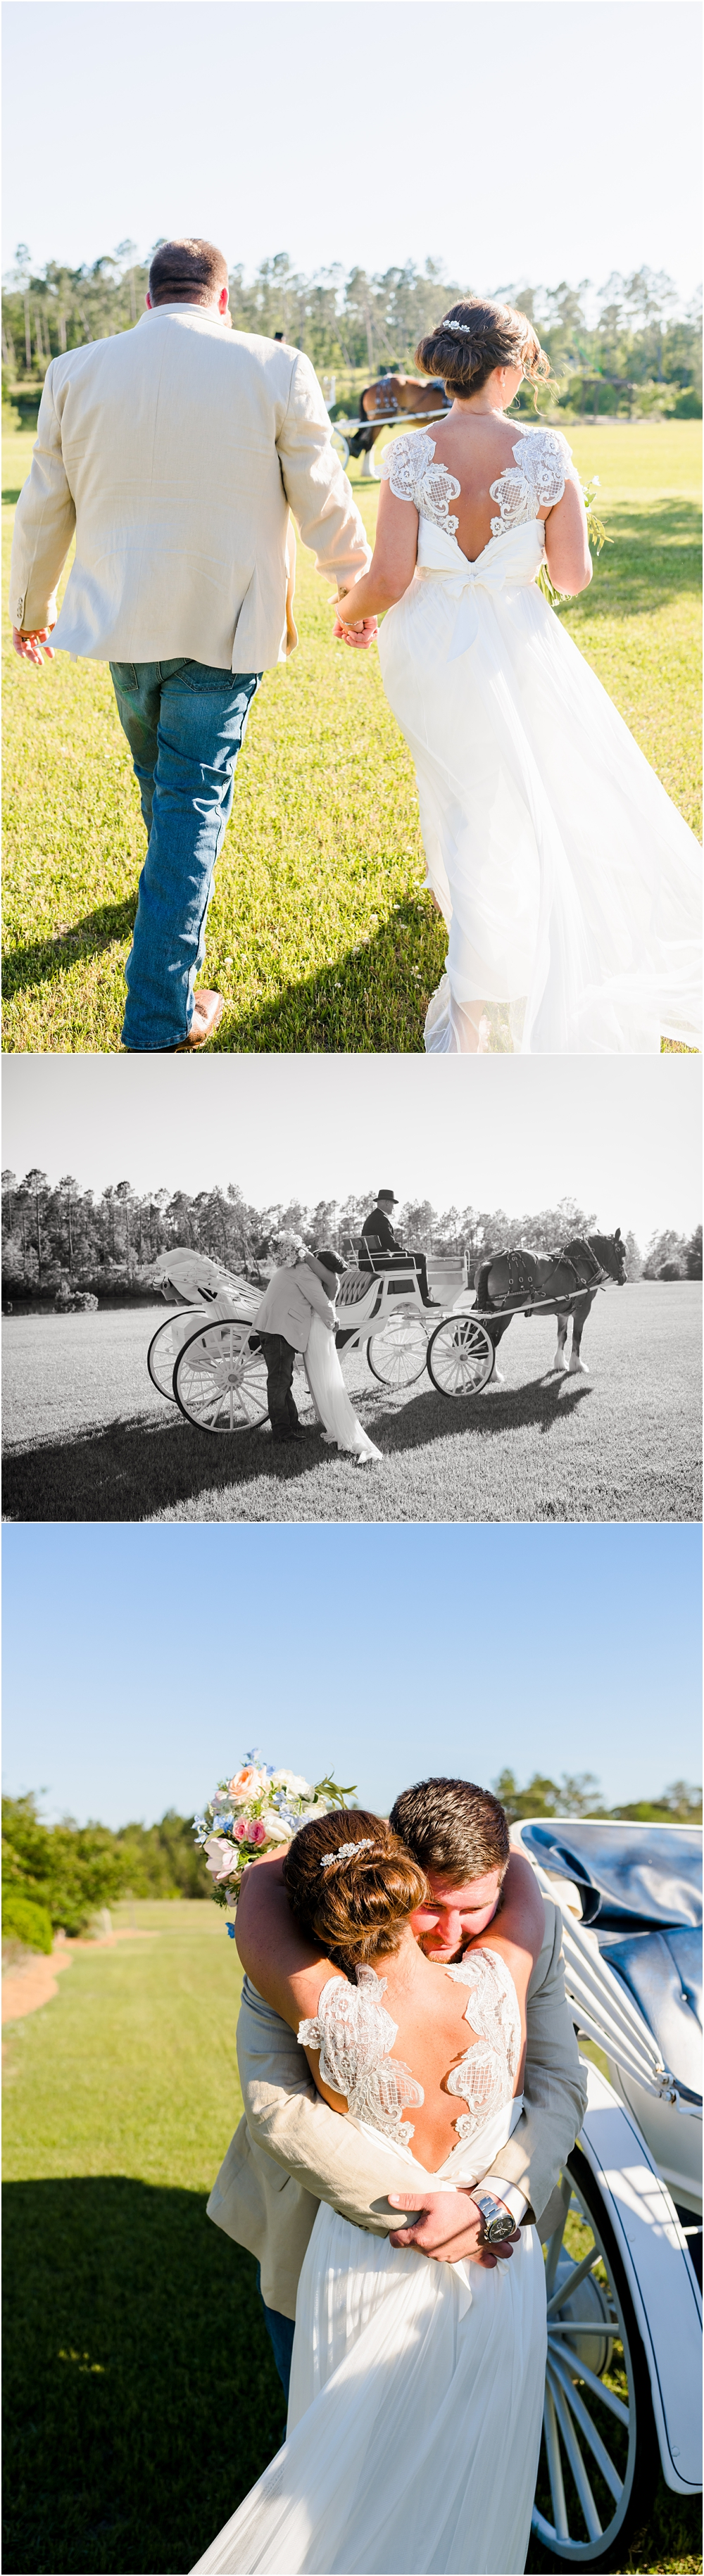 king-southern-lea-farms-vernon-florida-wedding-kiersten-stevenson-photography-(186-of-578).jpg